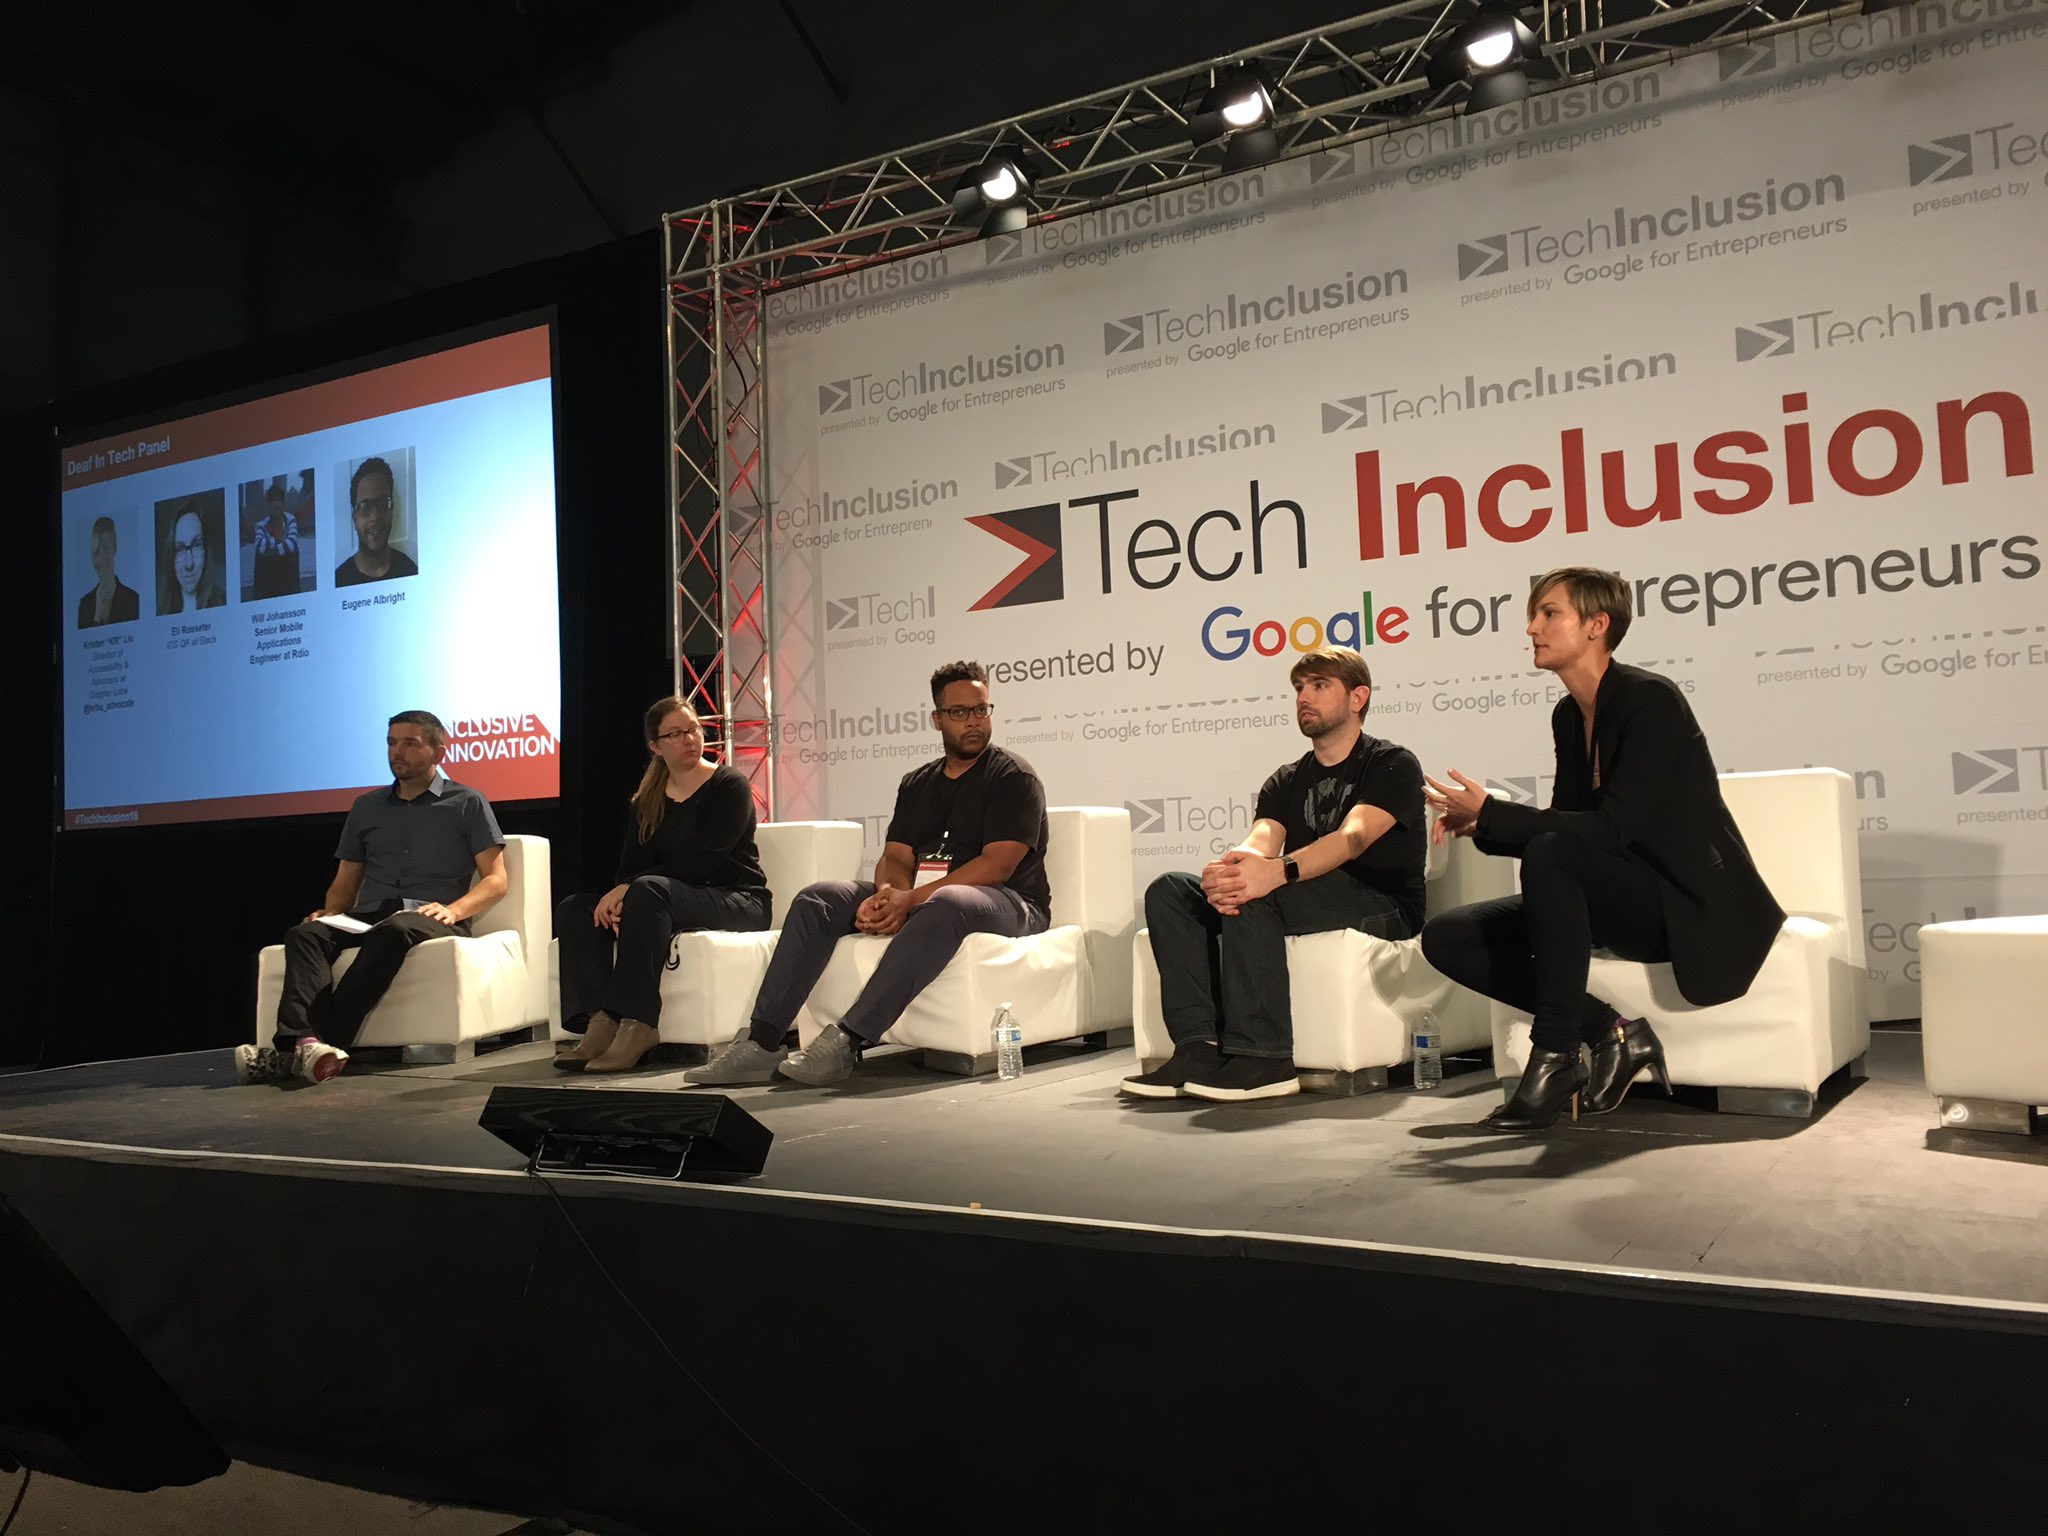 Great conversation happening at the Deaf in Tech Panel, including @krliu_advocate #TechInclusion16 https://t.co/EJRcGQrkE4